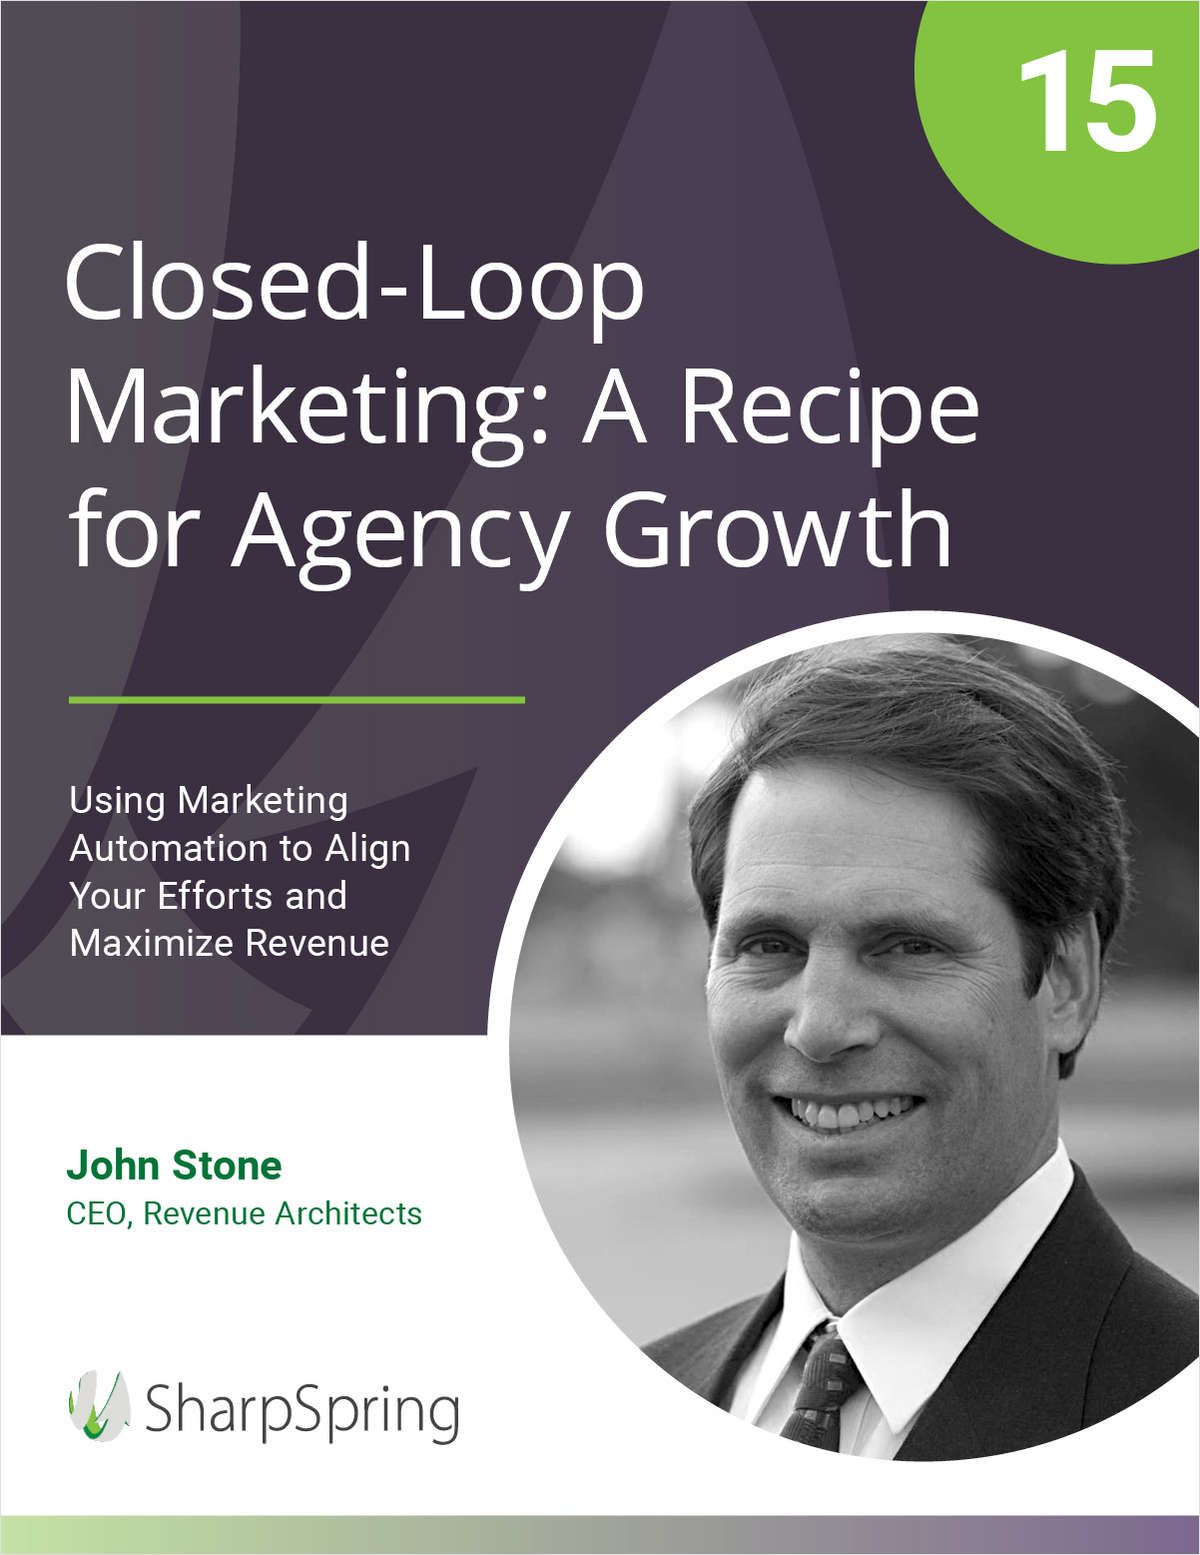 Closed-Loop Marketing - A Recipe for Growth